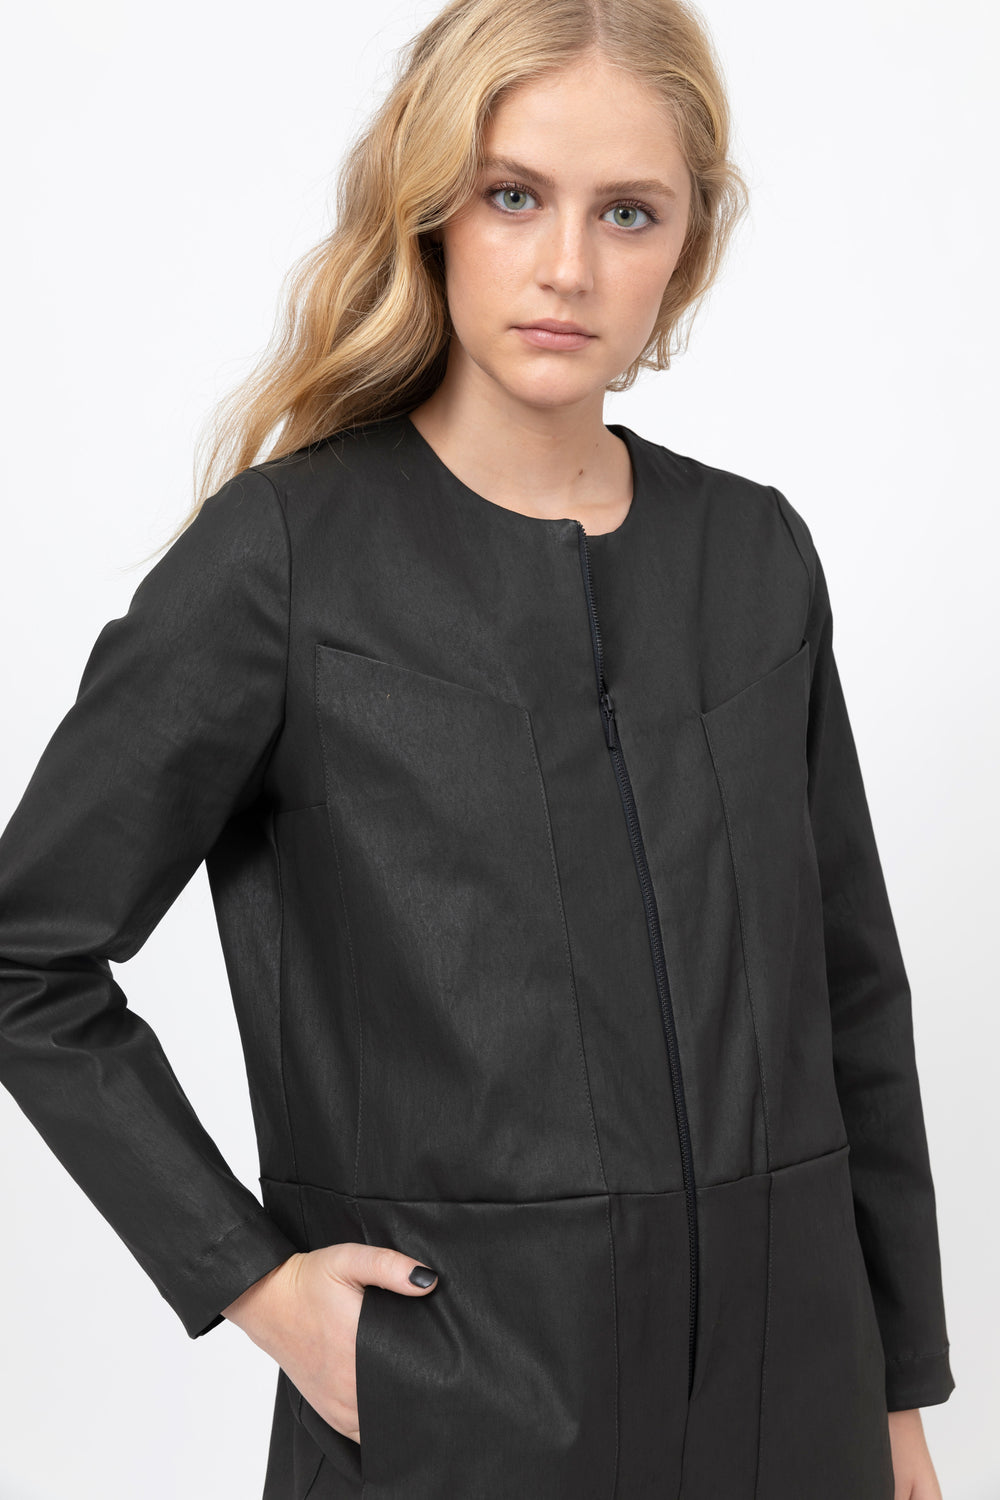 JUMPSUIT TAMPA - black